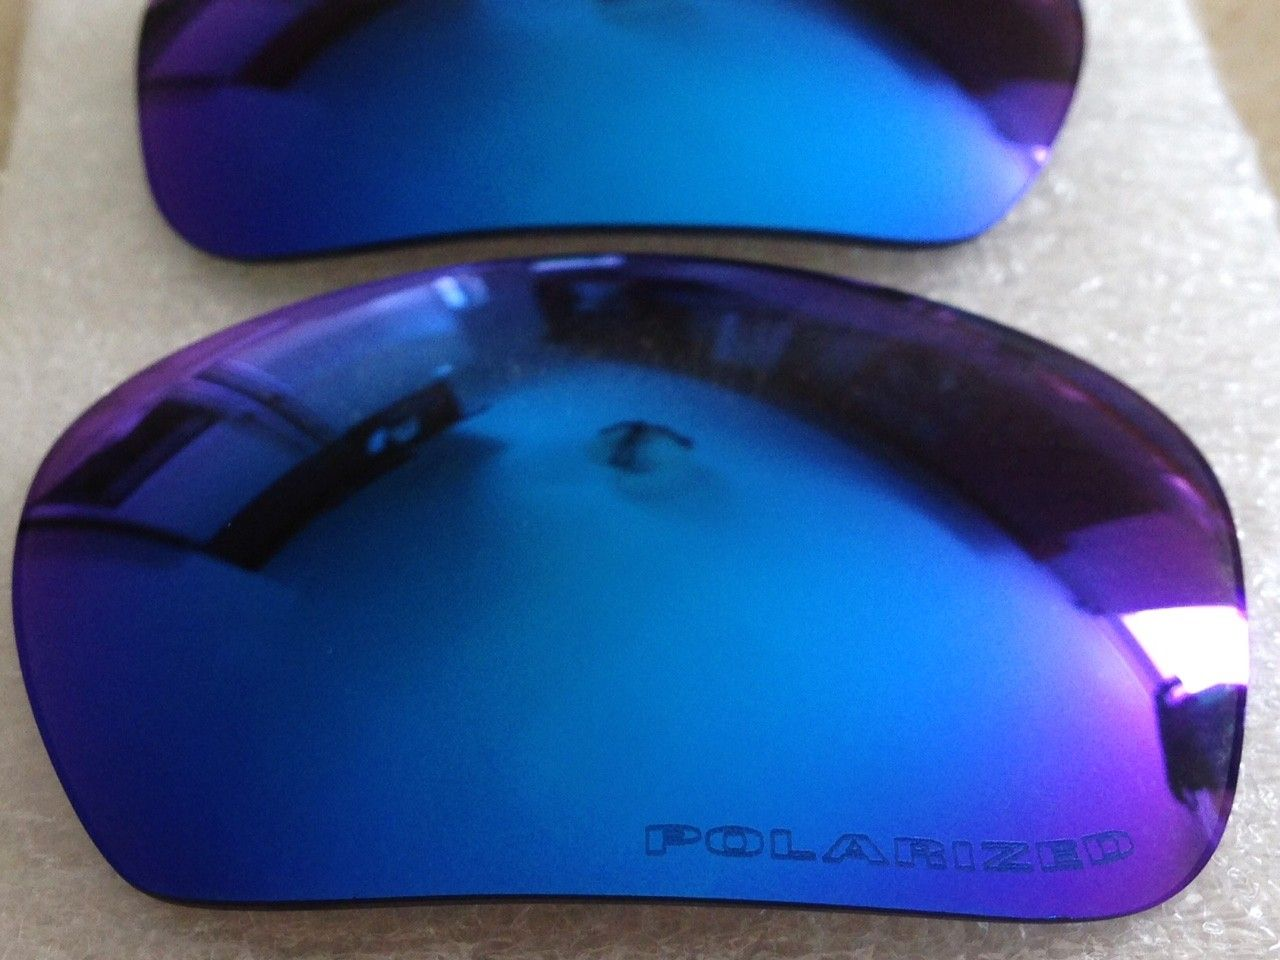 NEW GENUINE OAKLEY X-METAL BADMAN POLARIZED SAPPHIRE LENSES *PRICE DROPPED* - IMG_7137.JPG